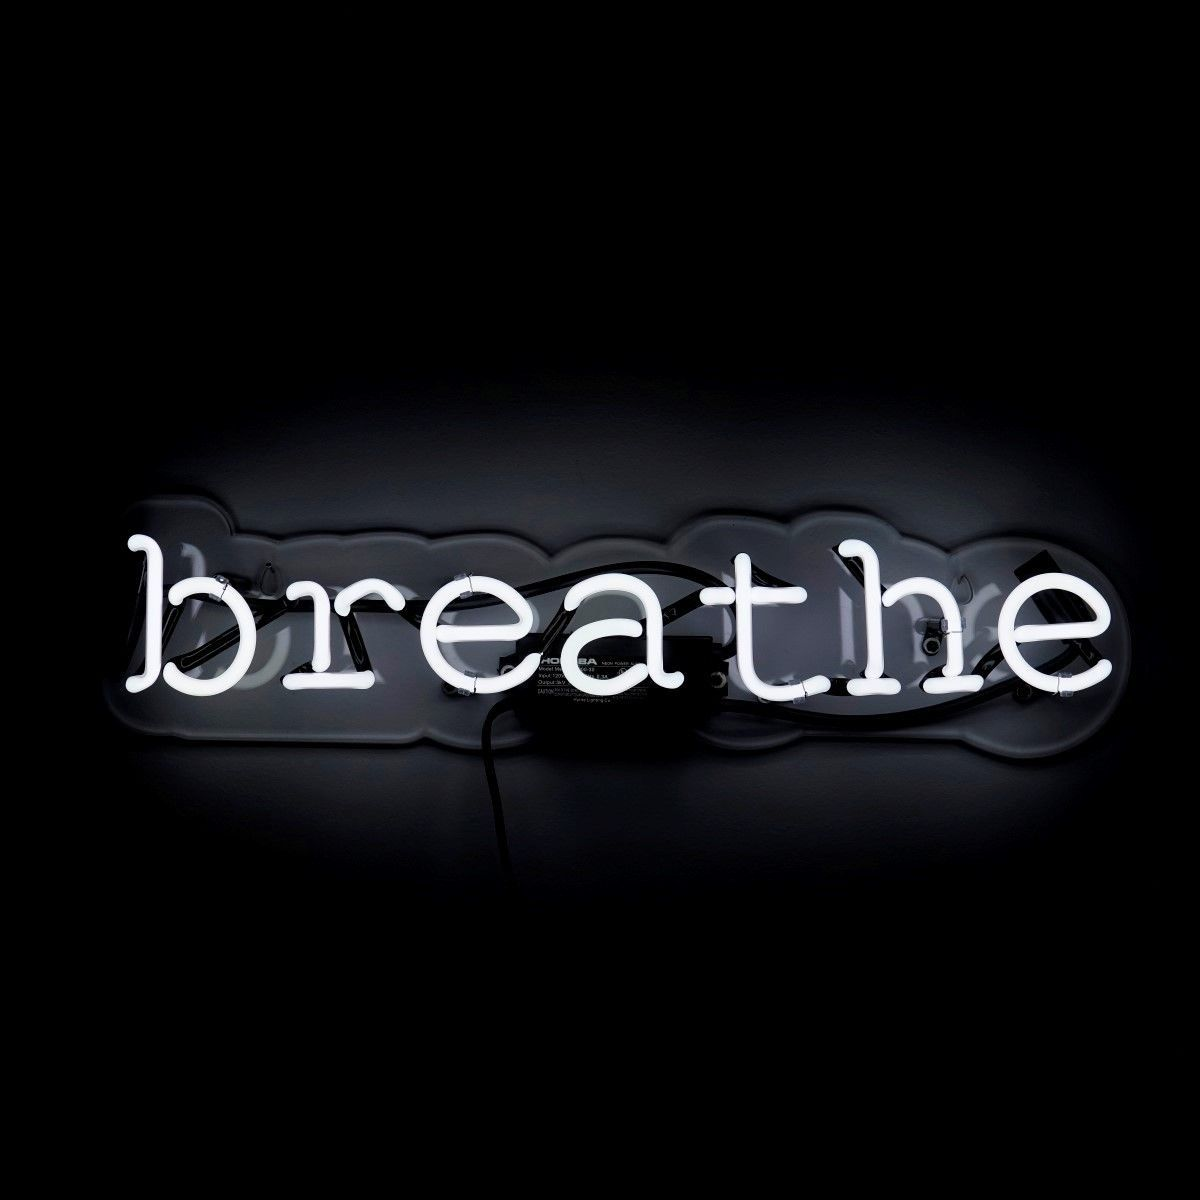 Breathe Neon Sign Black And White Picture Wall Black And White Photo Wall Black Aesthetic Wallpaper